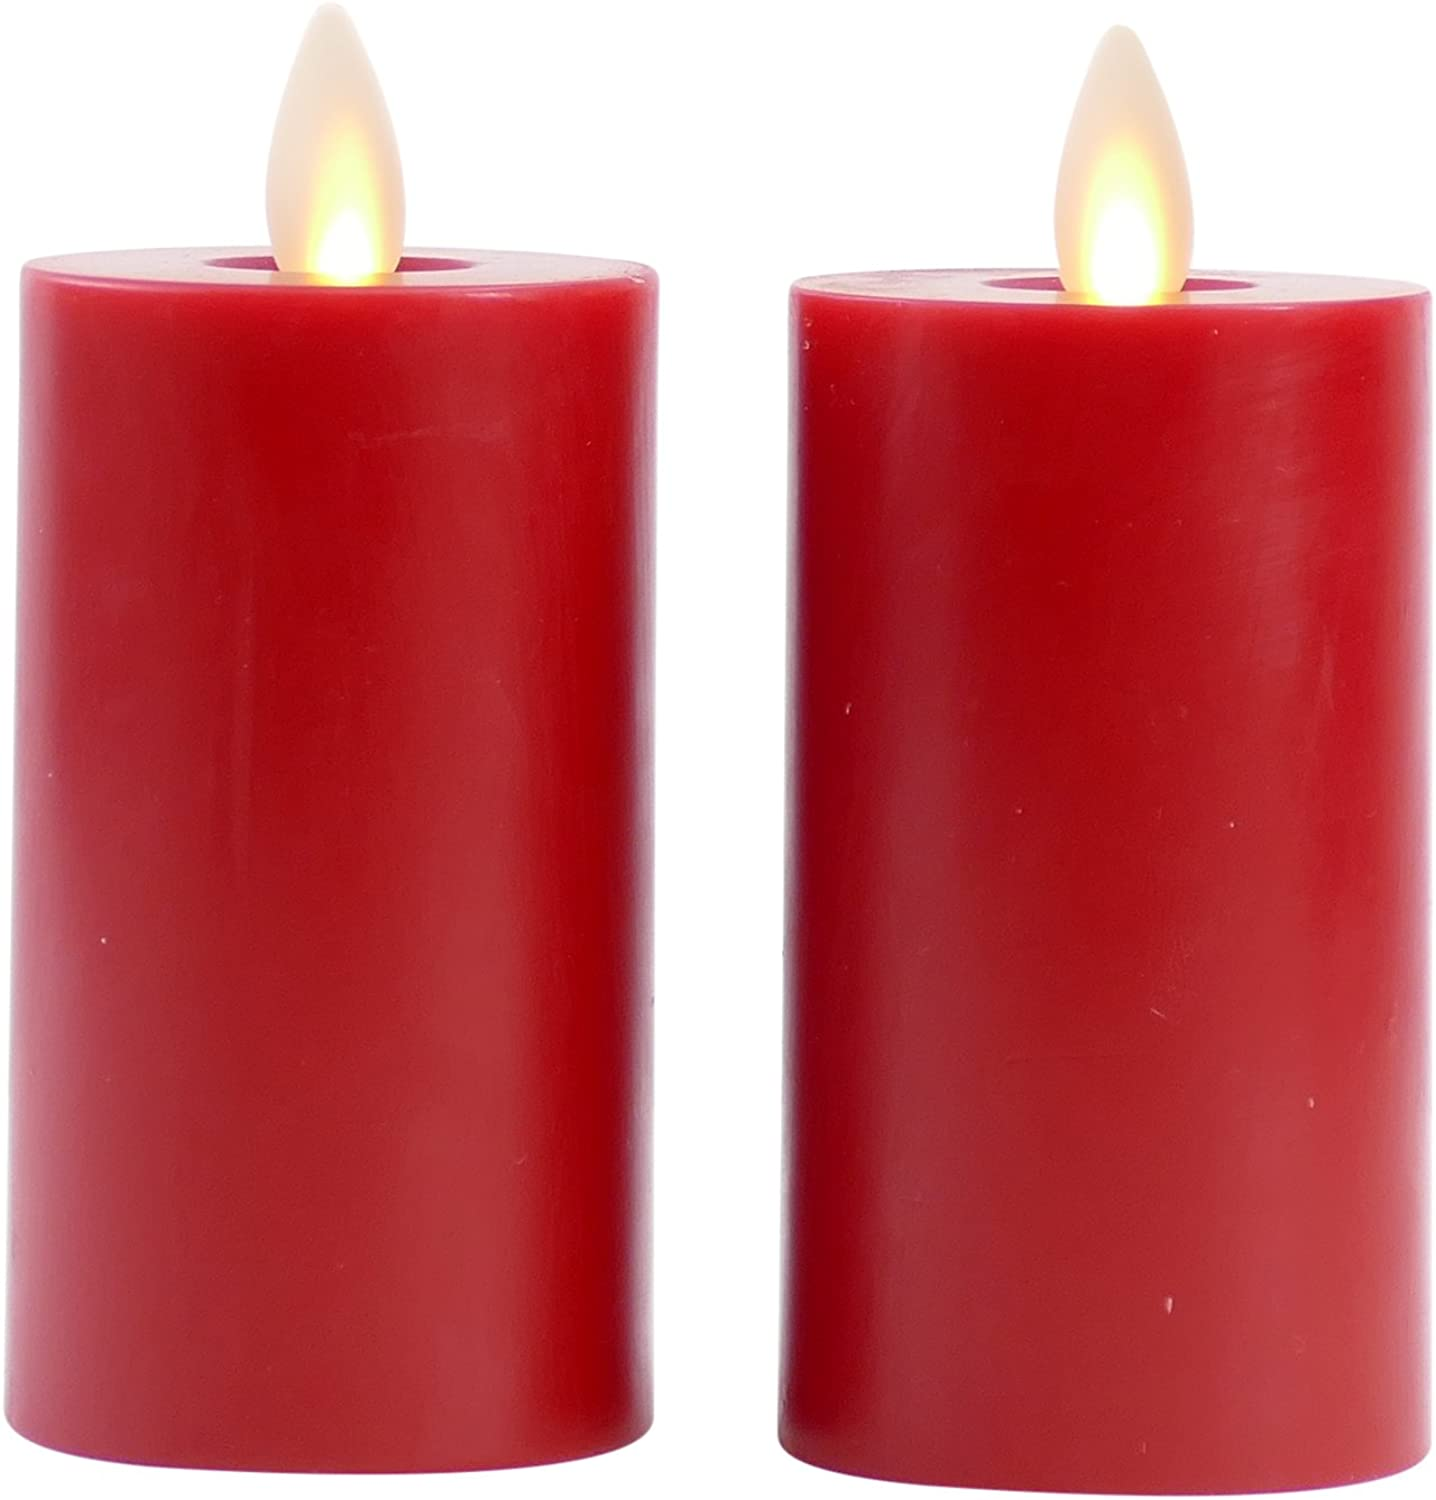 Set of 2 Liown Votive Flameless Candles   2 x3.5  Red Unscented Moving Flame Candles with Timer